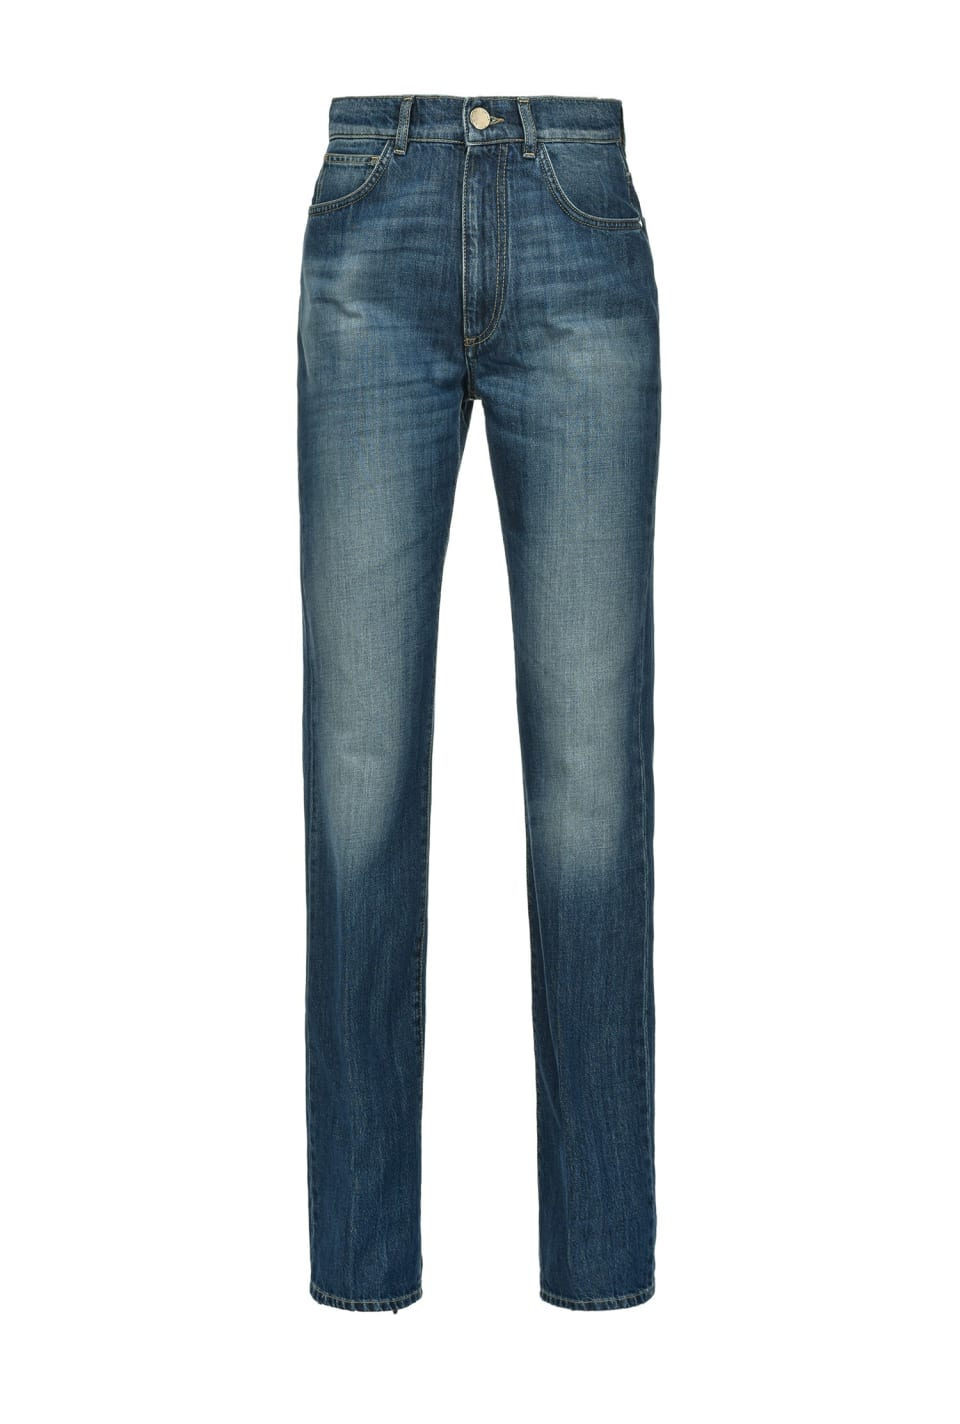 Snug-fitting straight jeans